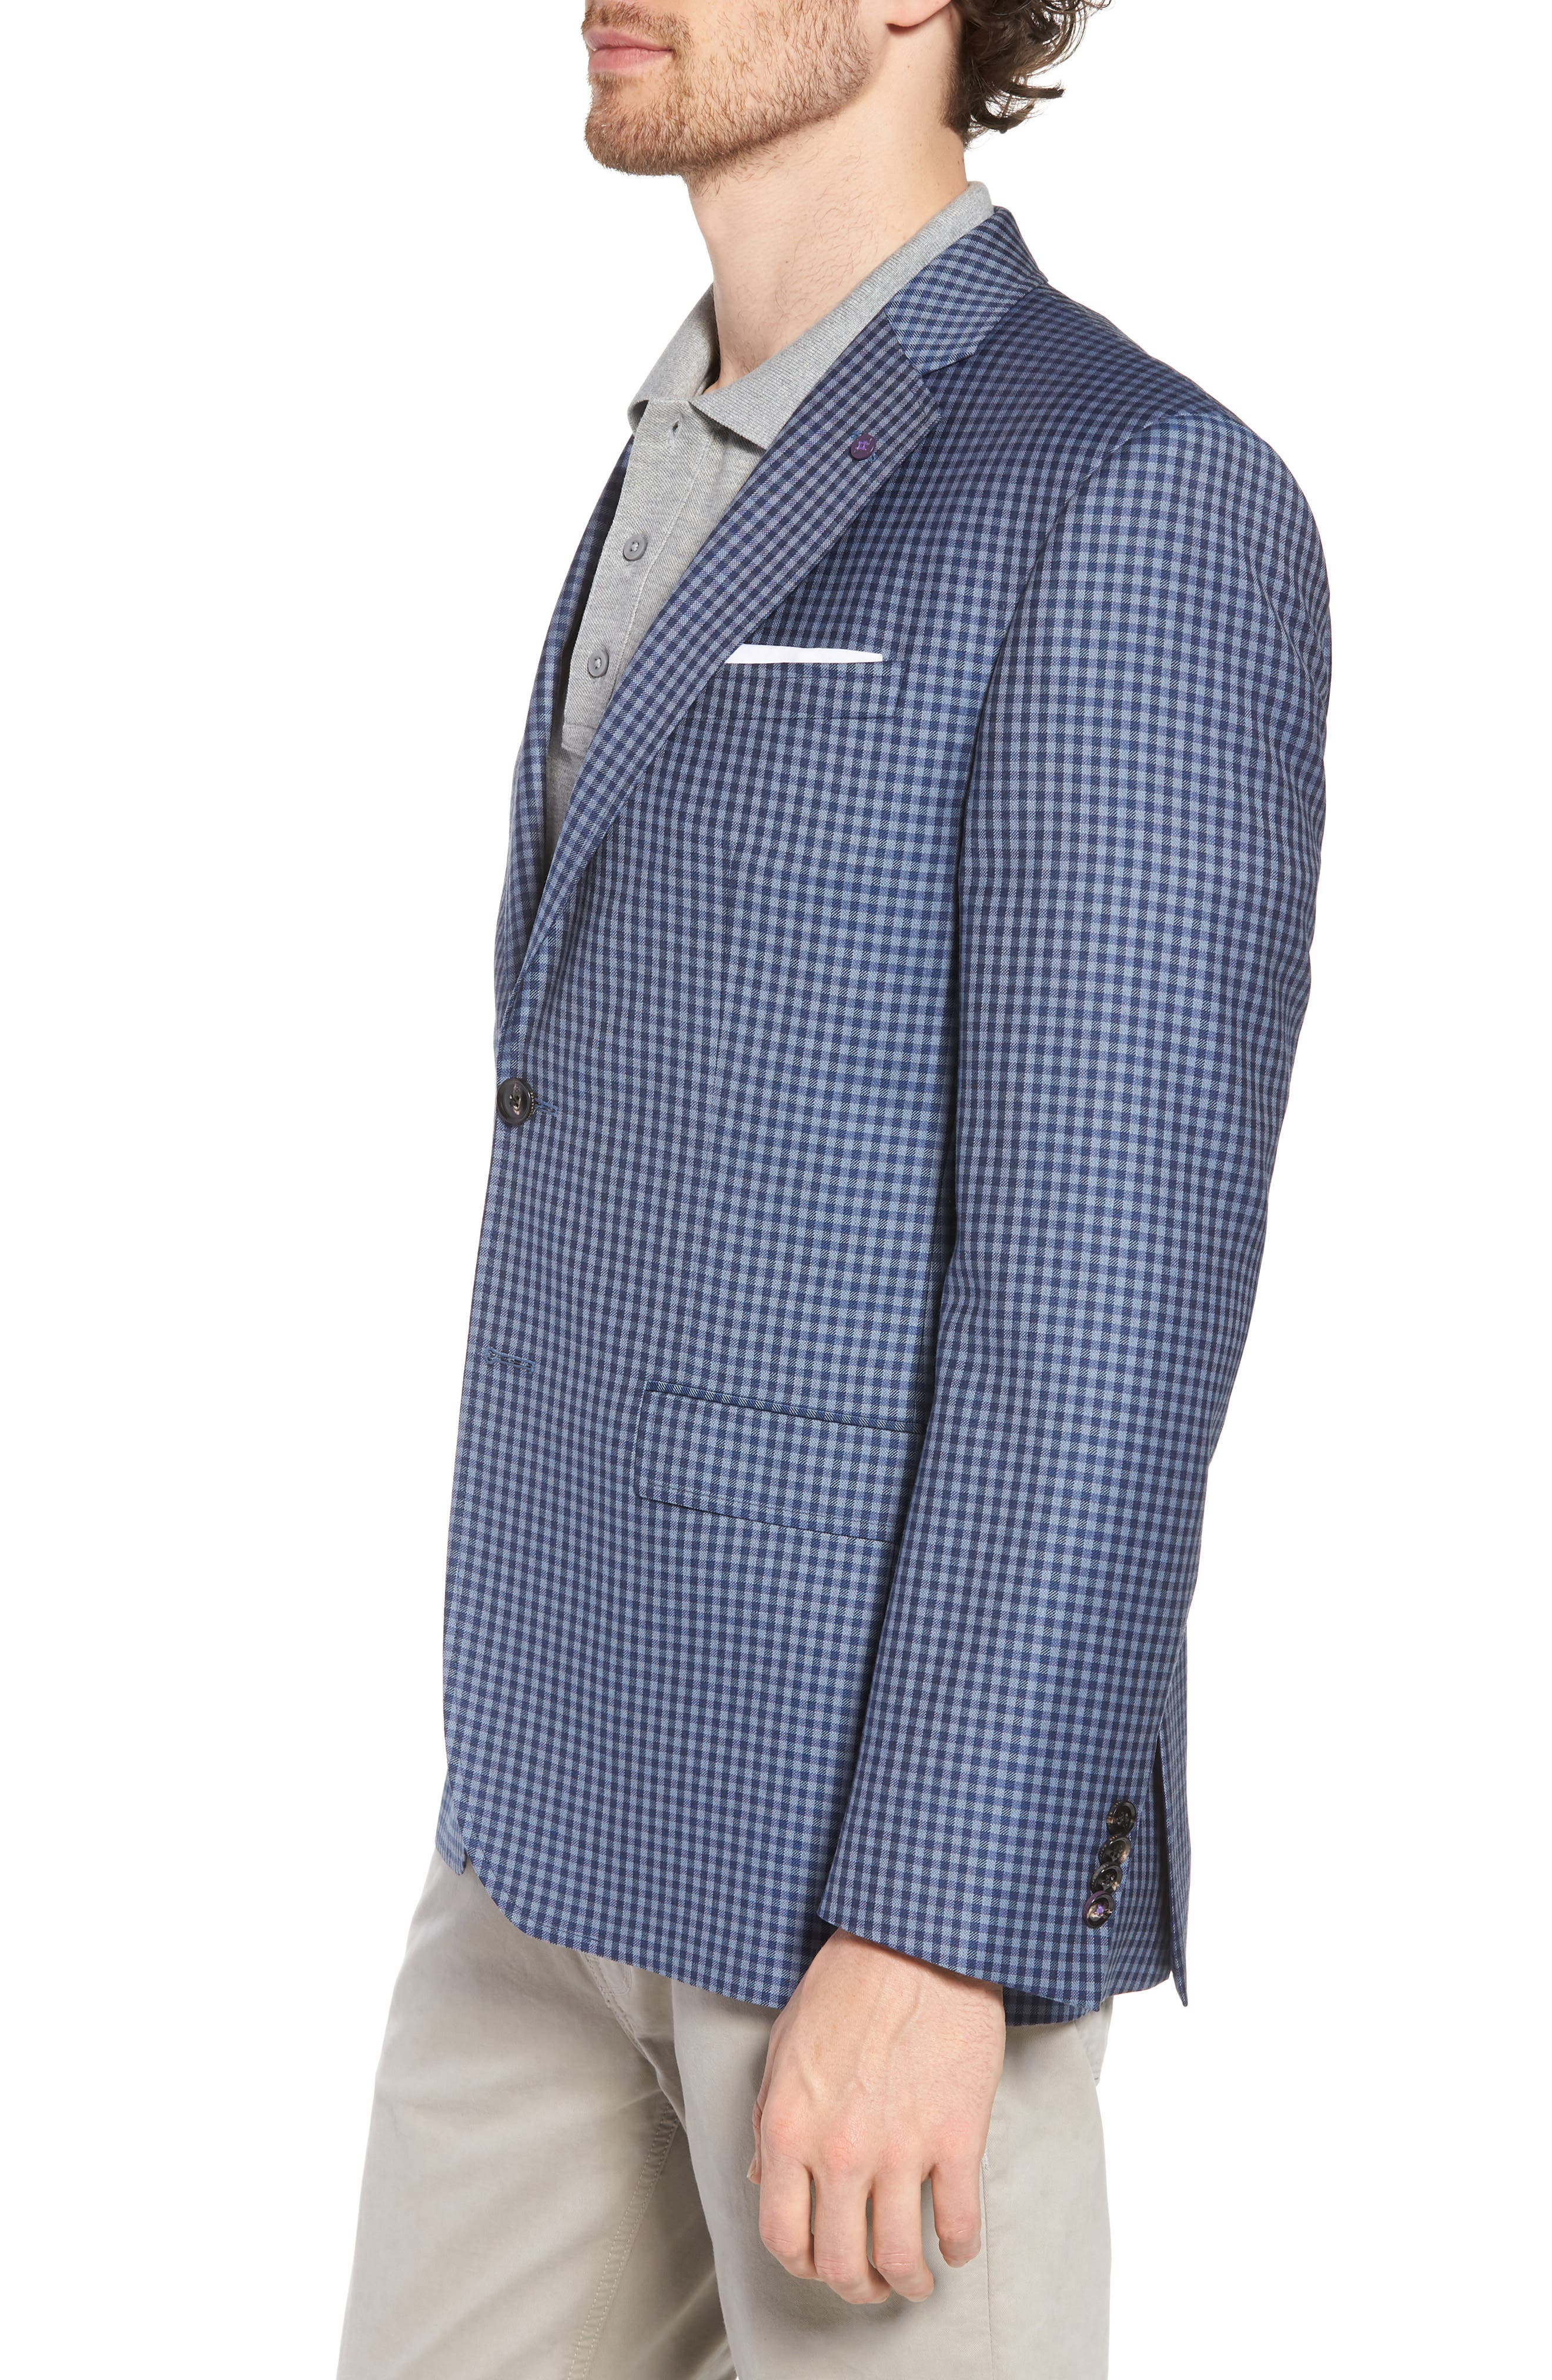 Jay Trim Fit Check Wool Sport Coat,                             Alternate thumbnail 3, color,                             Blue